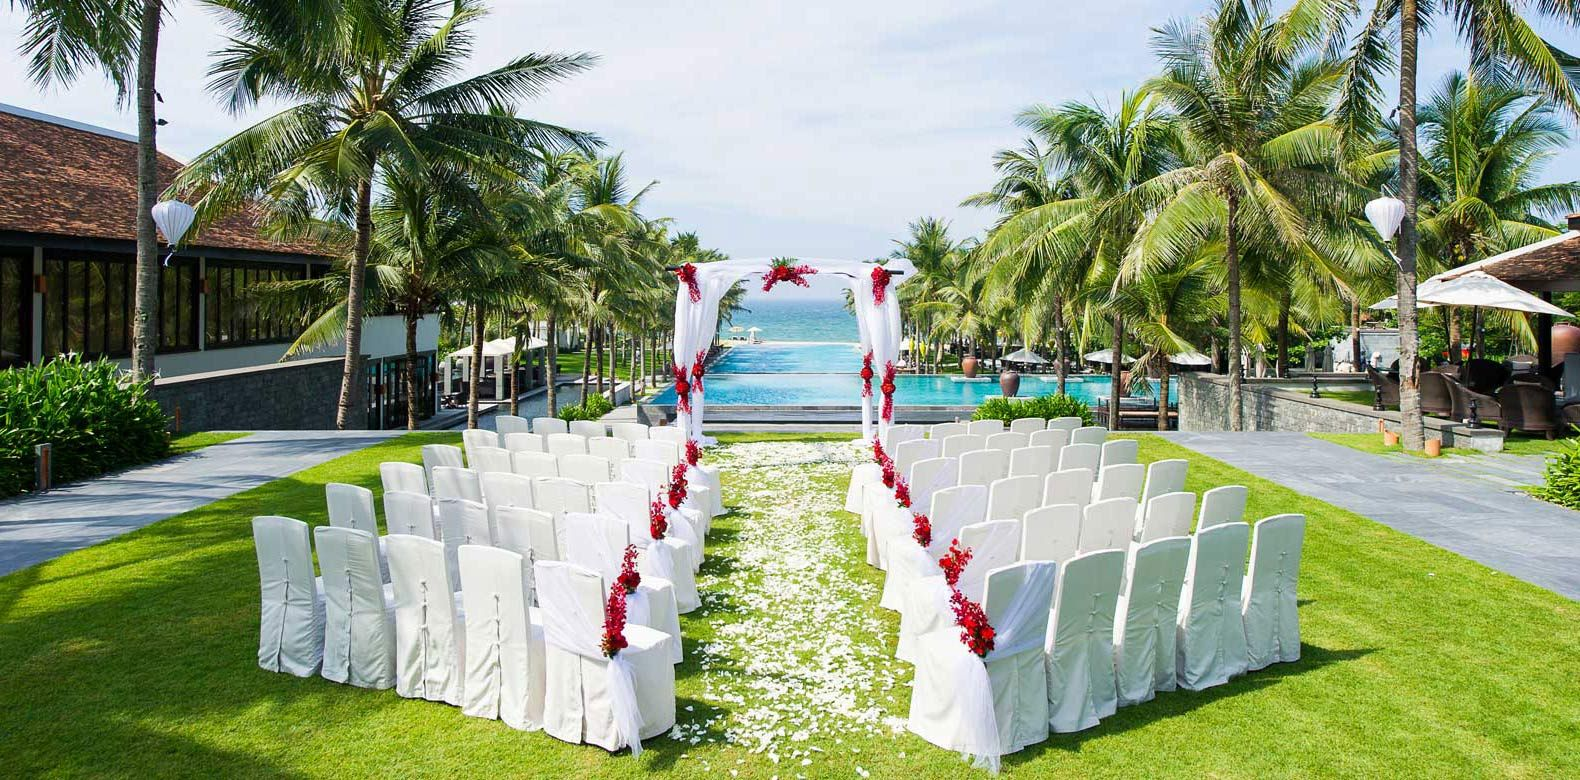 bulk satin chair covers white swing get a cover for your outdoor wedding in party fuzzy fabric supply spandex various size of chairs at